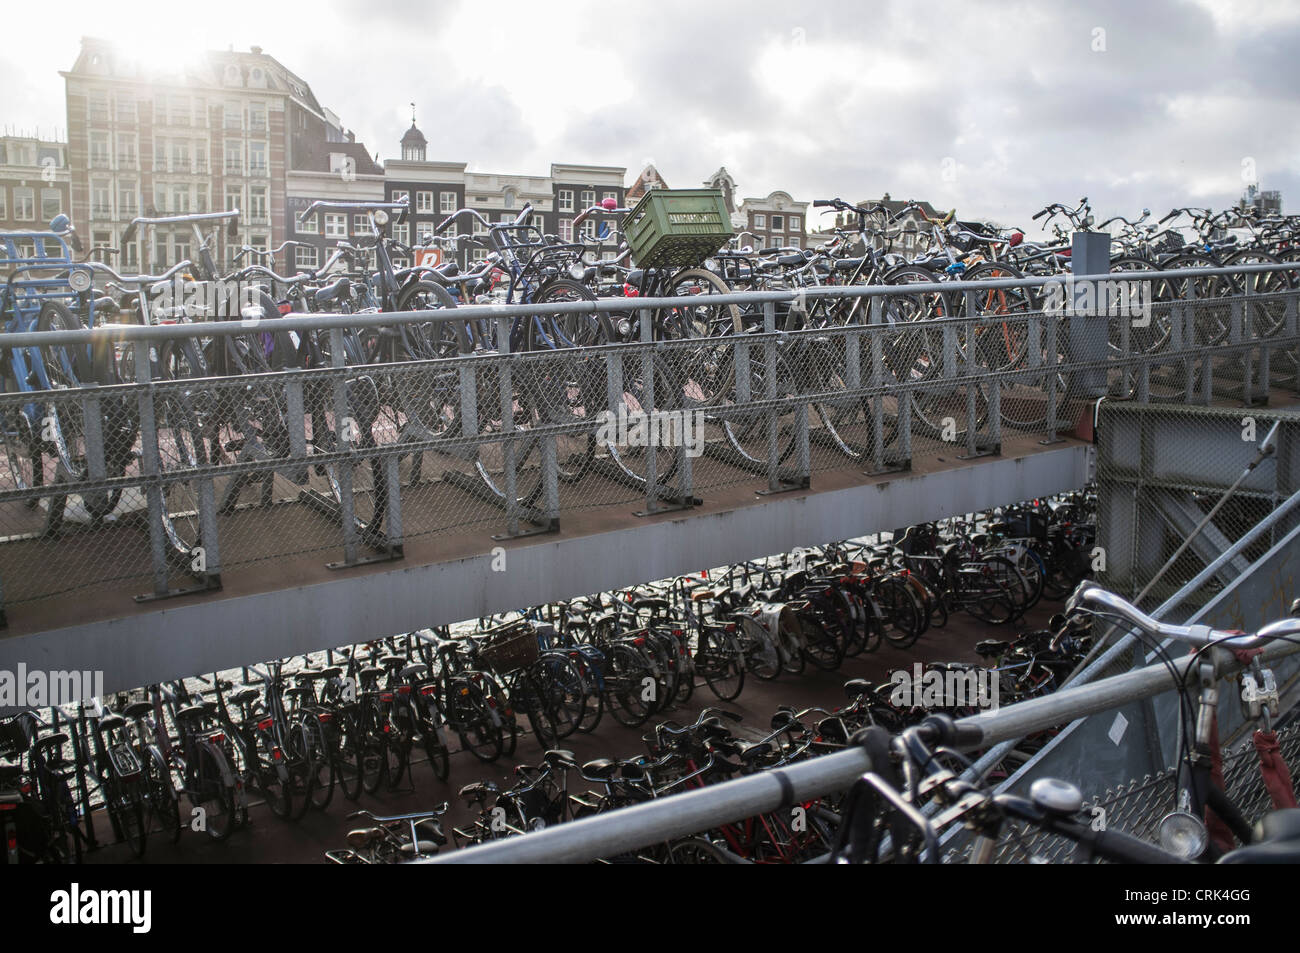 Bicycles parked on city sidewalk - Stock Image